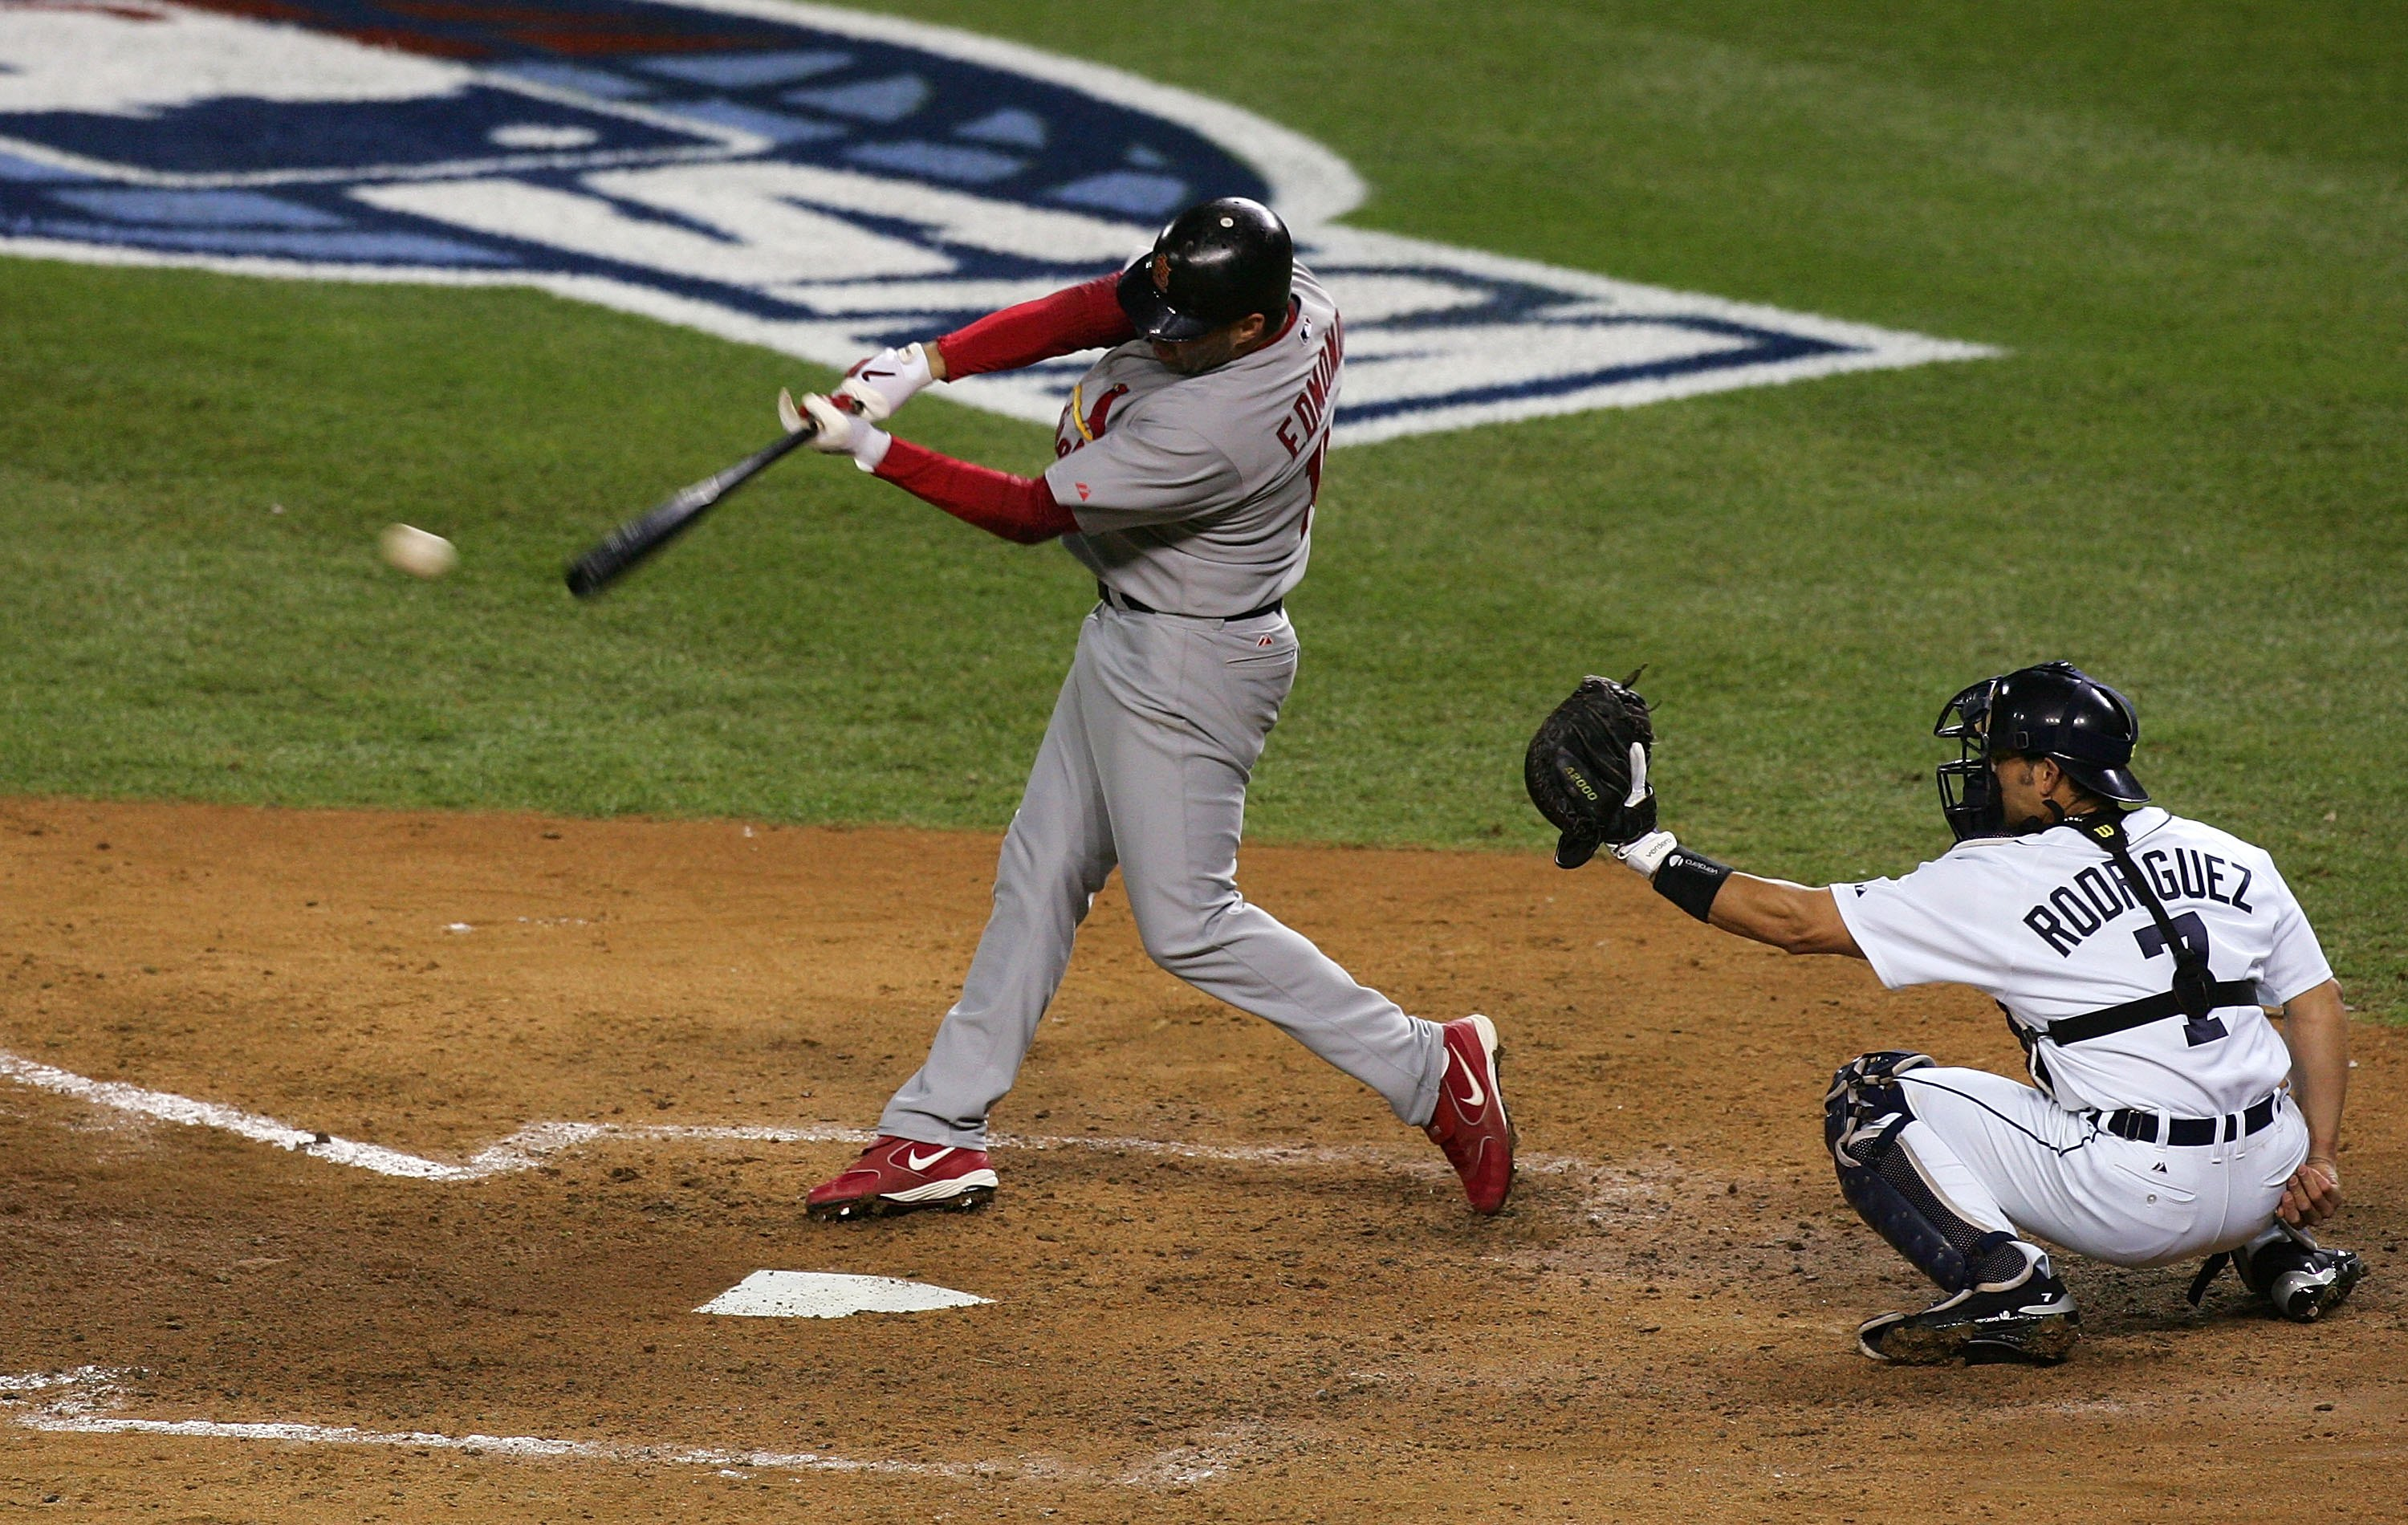 DETROIT - OCTOBER 21:  Jim Edmonds #15 of the St. Louis Cardinals hits an RBI single to score Albert Pujols #5 in the top of the sixth inning against the Detroit Tigers during Game One of 2006 World Series October 21, 2006 at Comerica Park in Detroit Mich